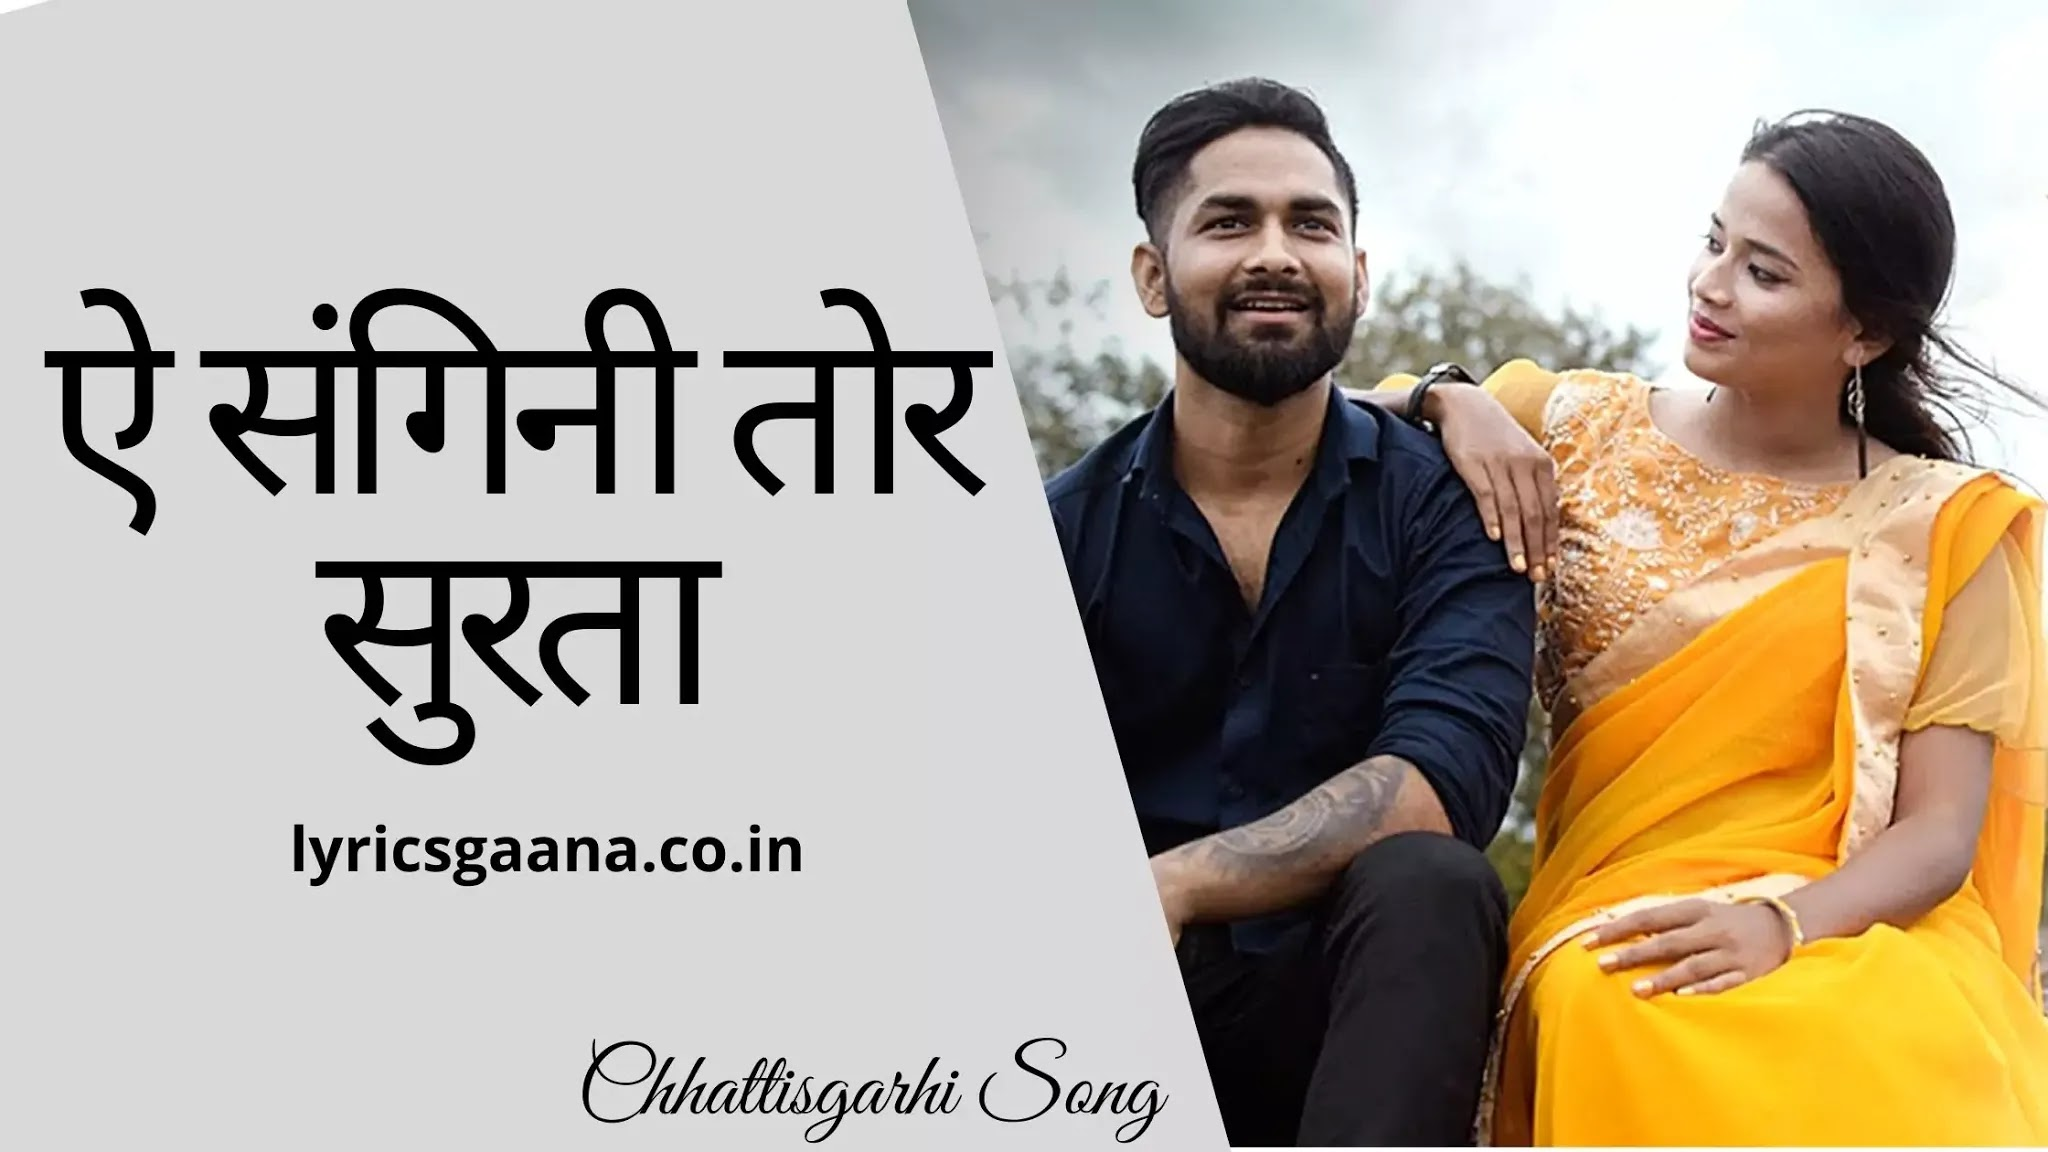 Ae Sangini Tor Surta Lyrics | New Cg Song | ऐ संगिनी तोर सुरता